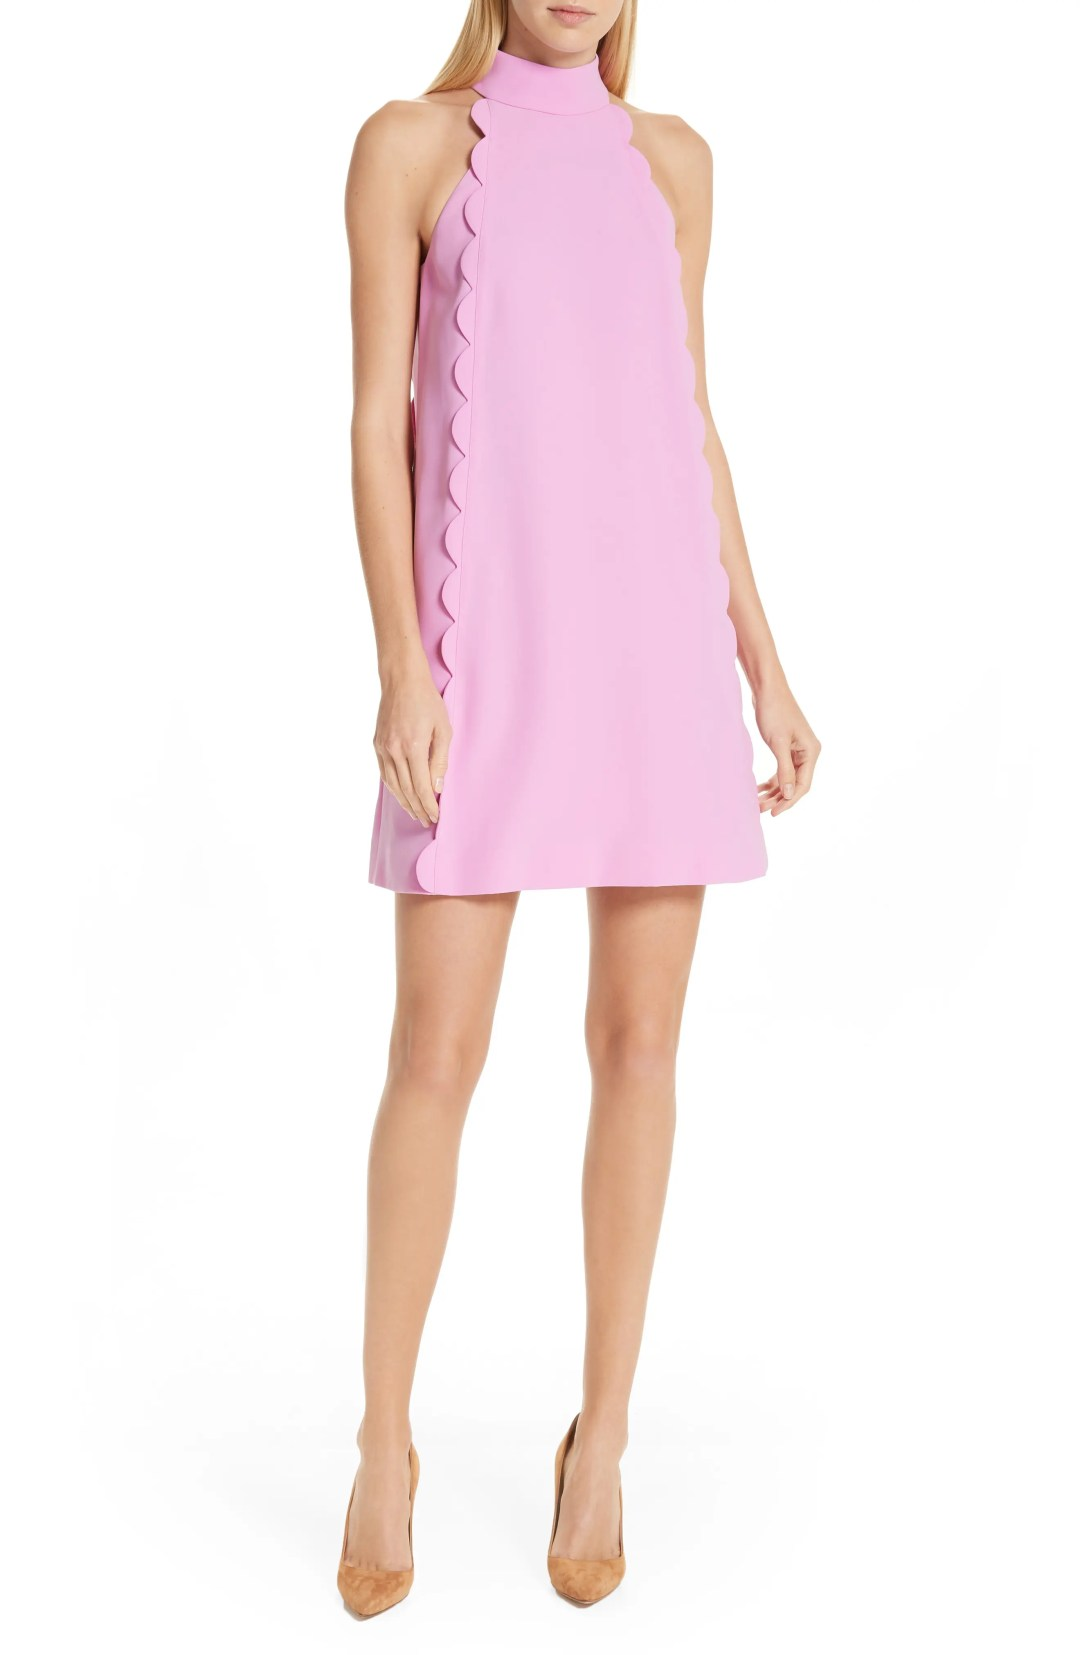 10b7db8c772b Ready-To-Wear Report  Shop the What s Now Collection at Nordstrom ...